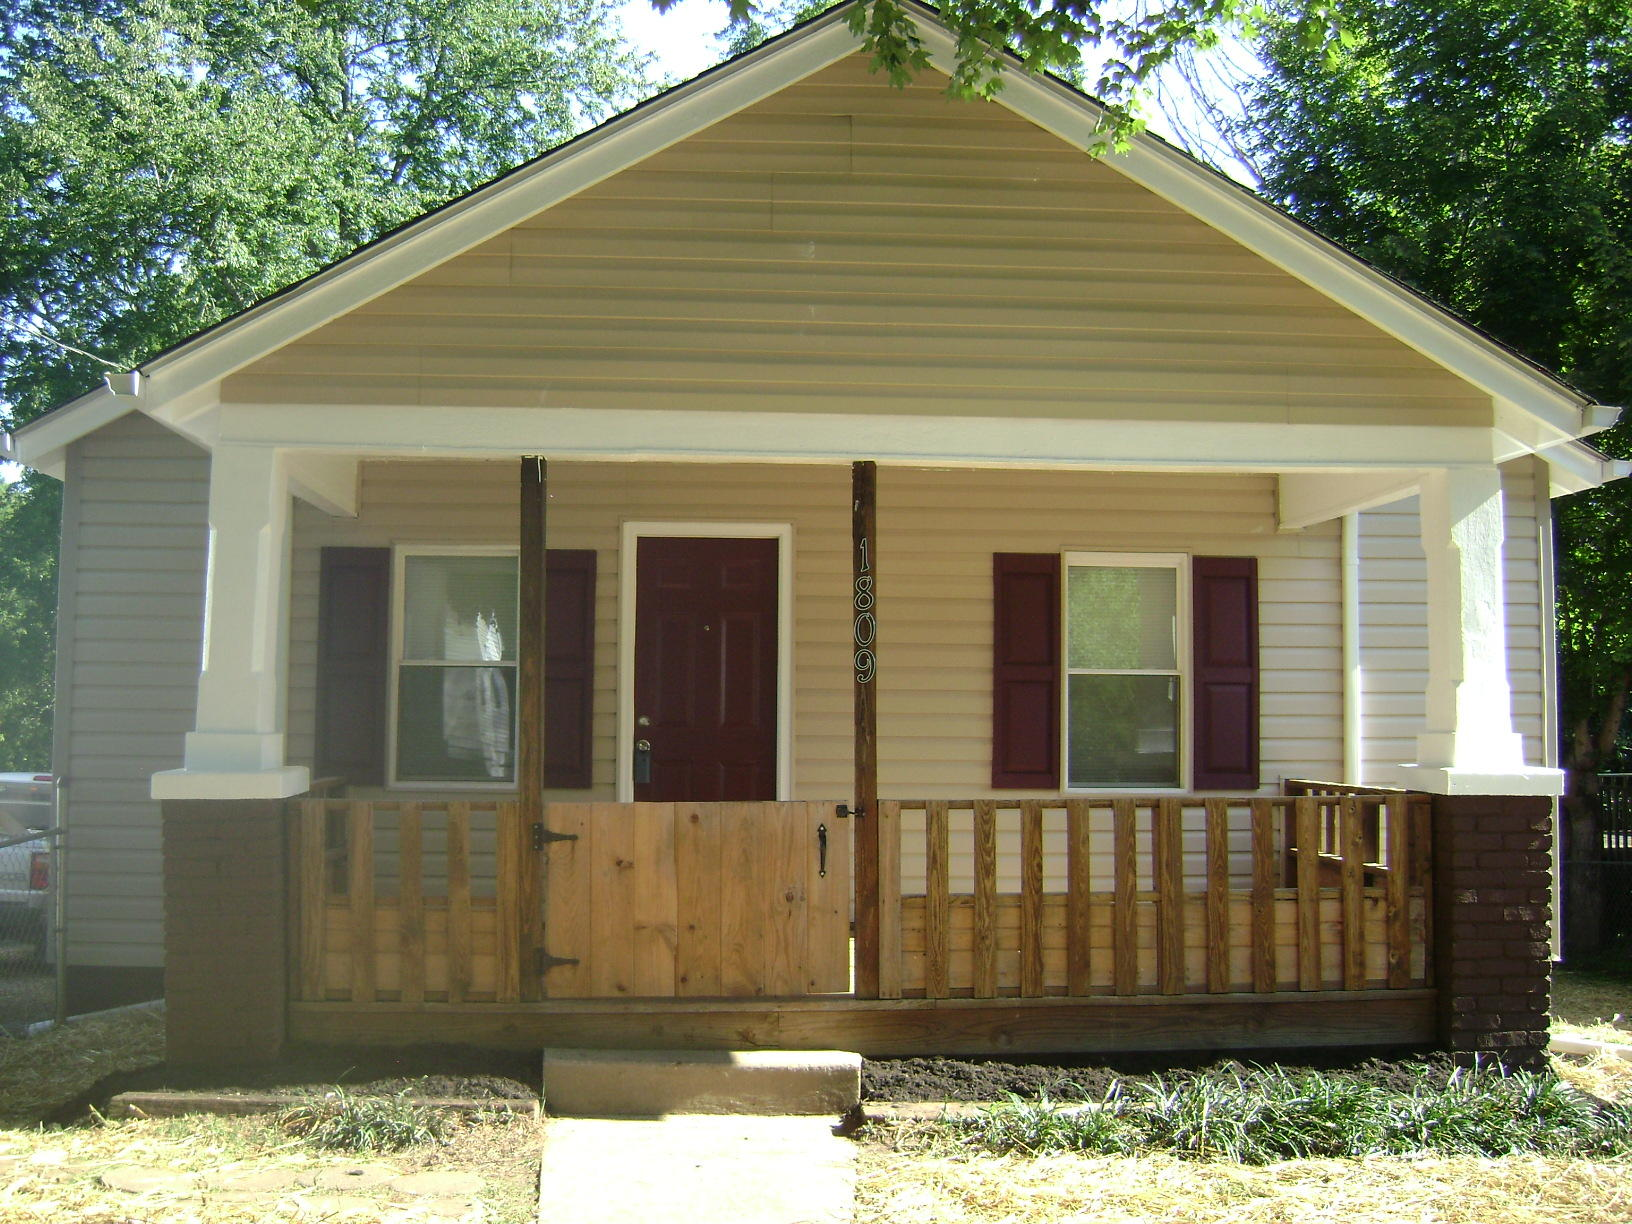 1809 Mcclung, Knoxville, Tennessee, United States 37920, 2 Bedrooms Bedrooms, ,1 BathroomBathrooms,Single Family,For Sale,Mcclung,1126005